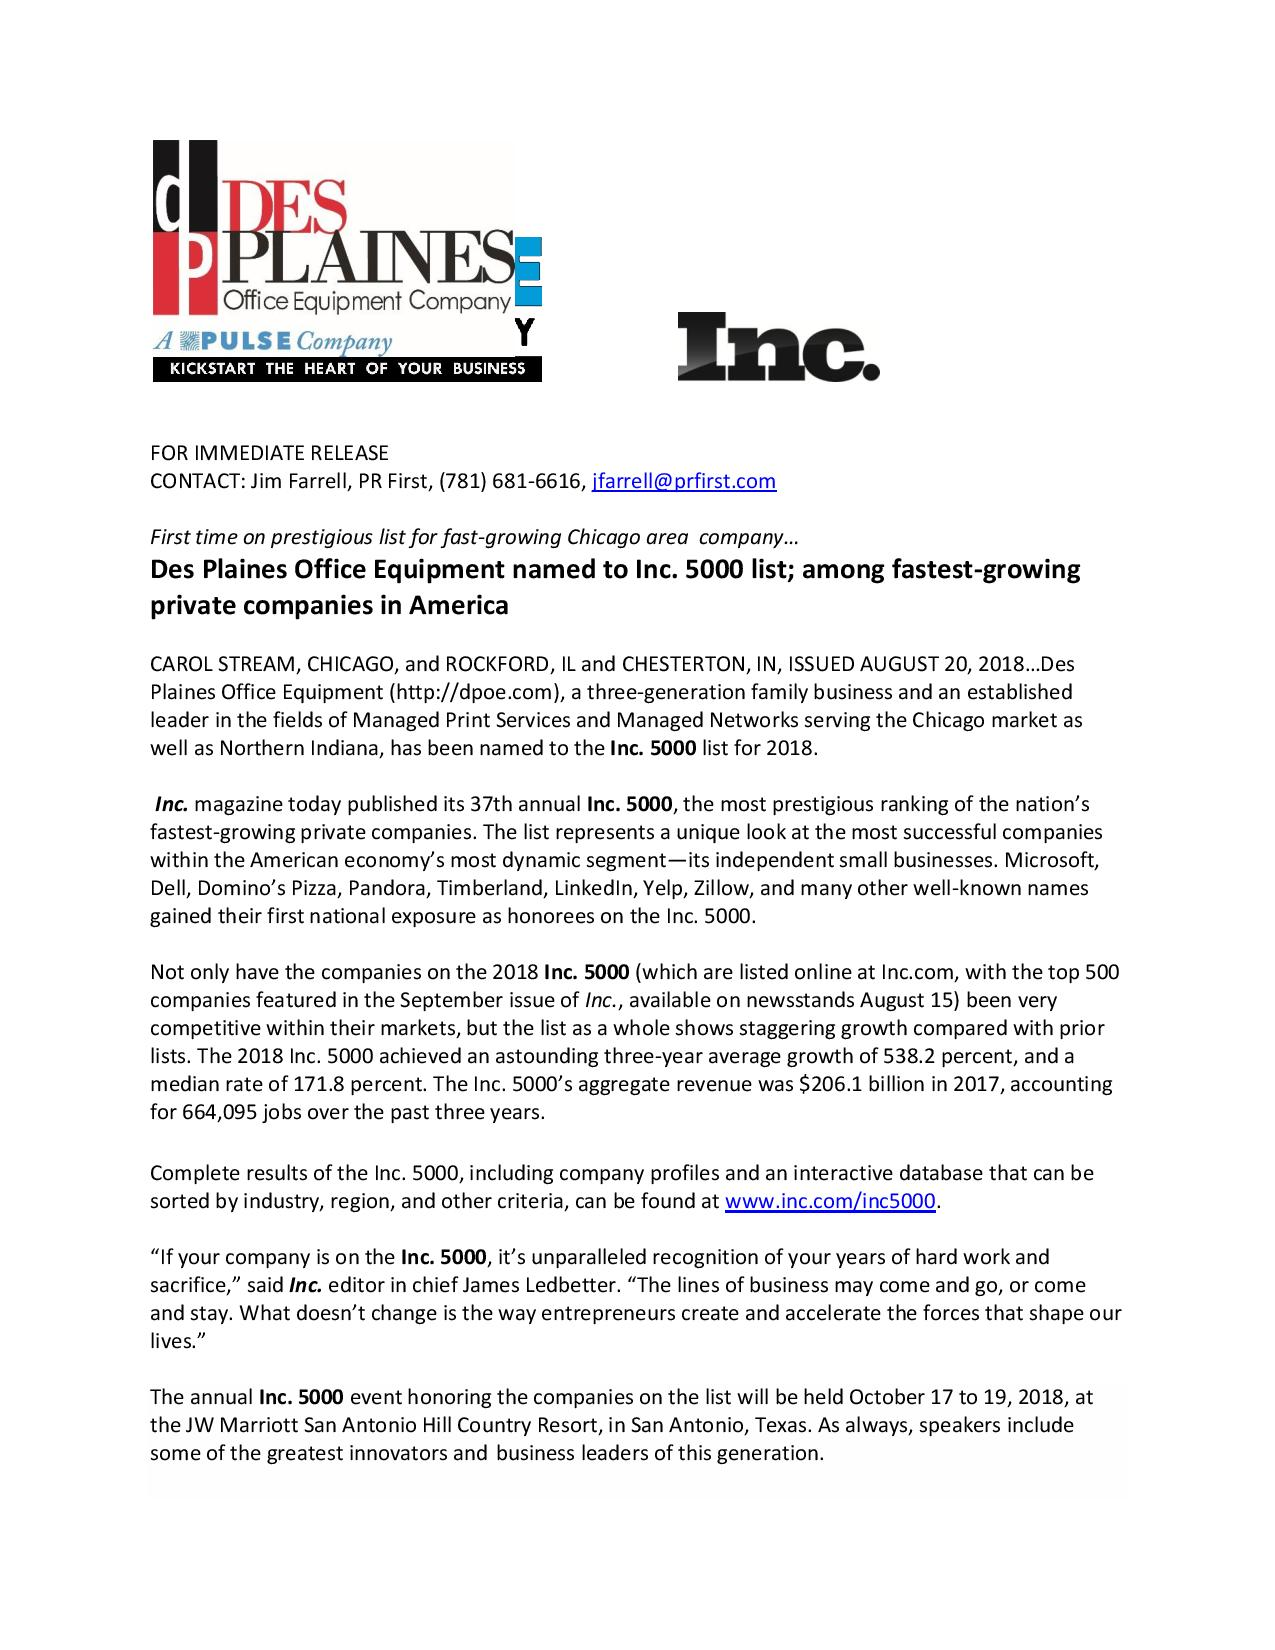 Des Plaines Office Equipment Named To Inc 5000 List Among Fastest Growing Private Companies In America